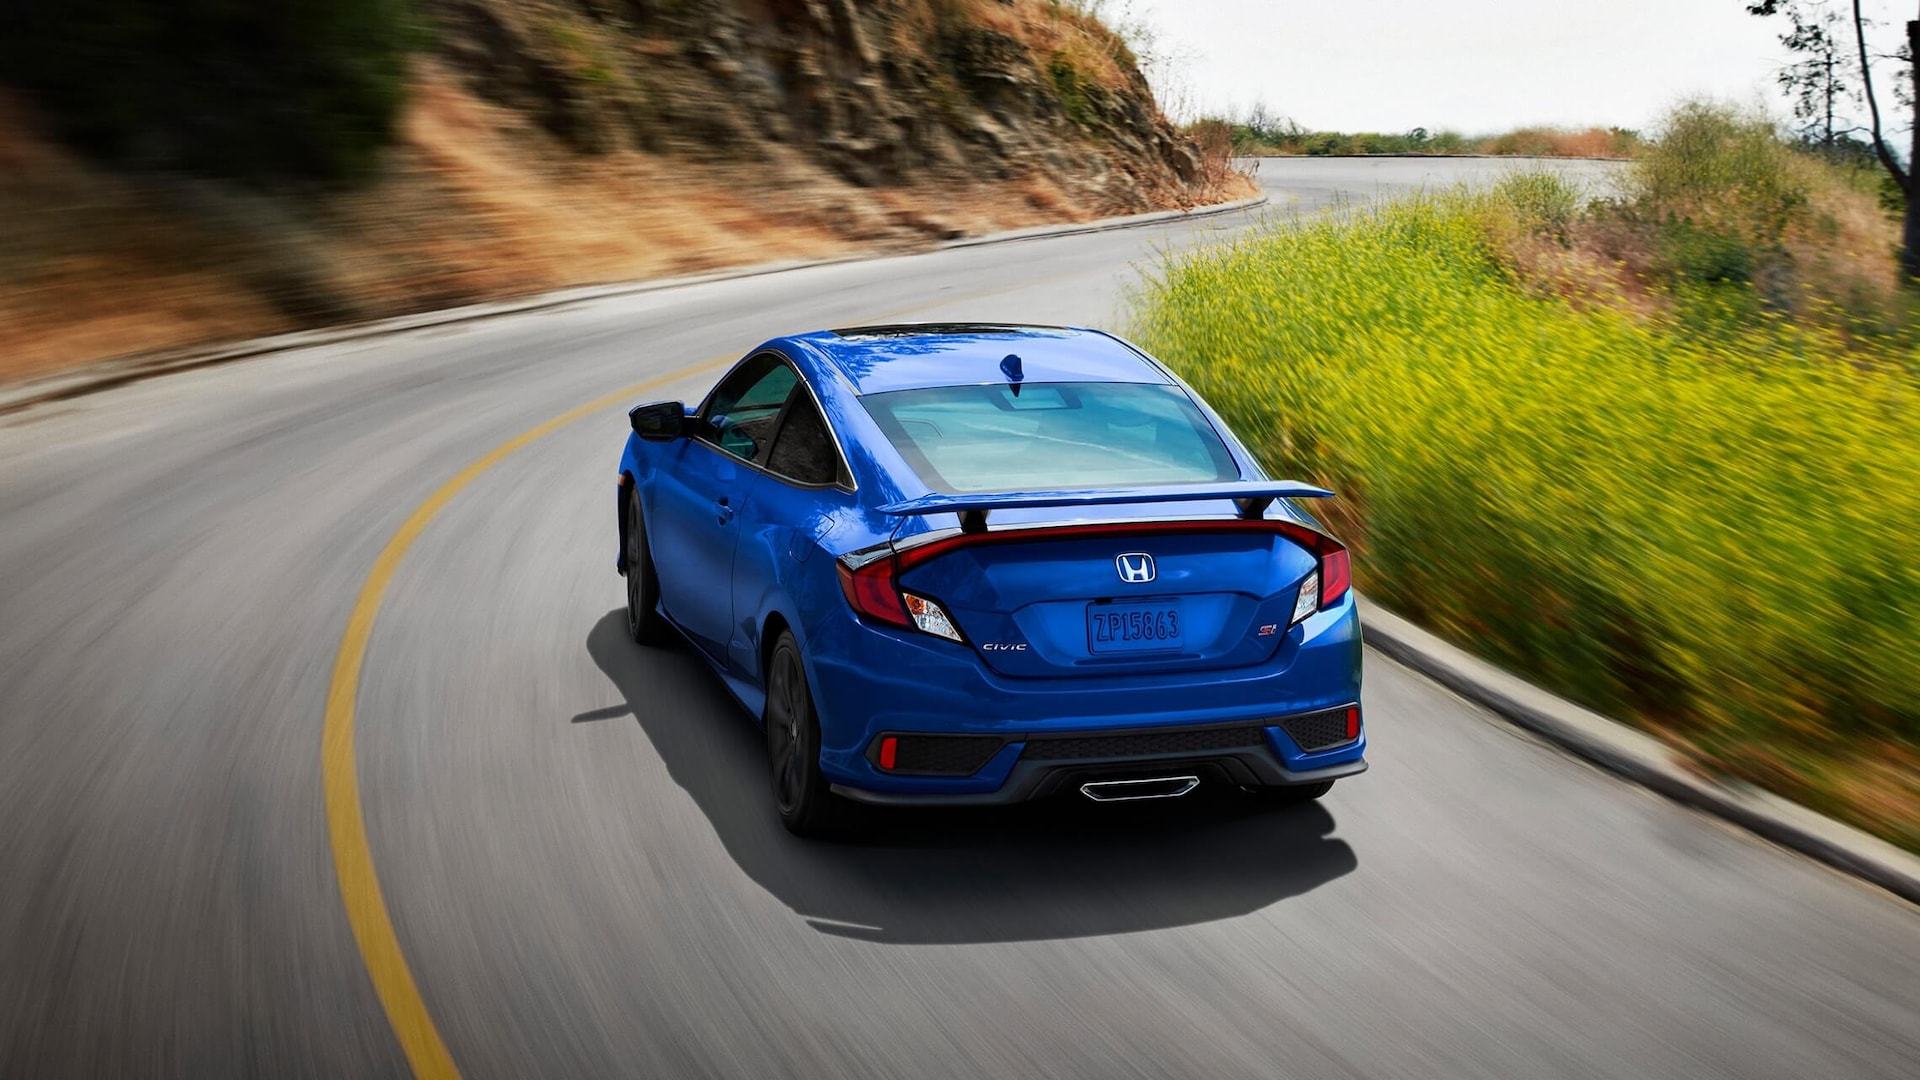 Rear 7/8 driver's side view of 2020 Honda Civic Si Coupe in Aegean Blue Metallic driving on mountain road.